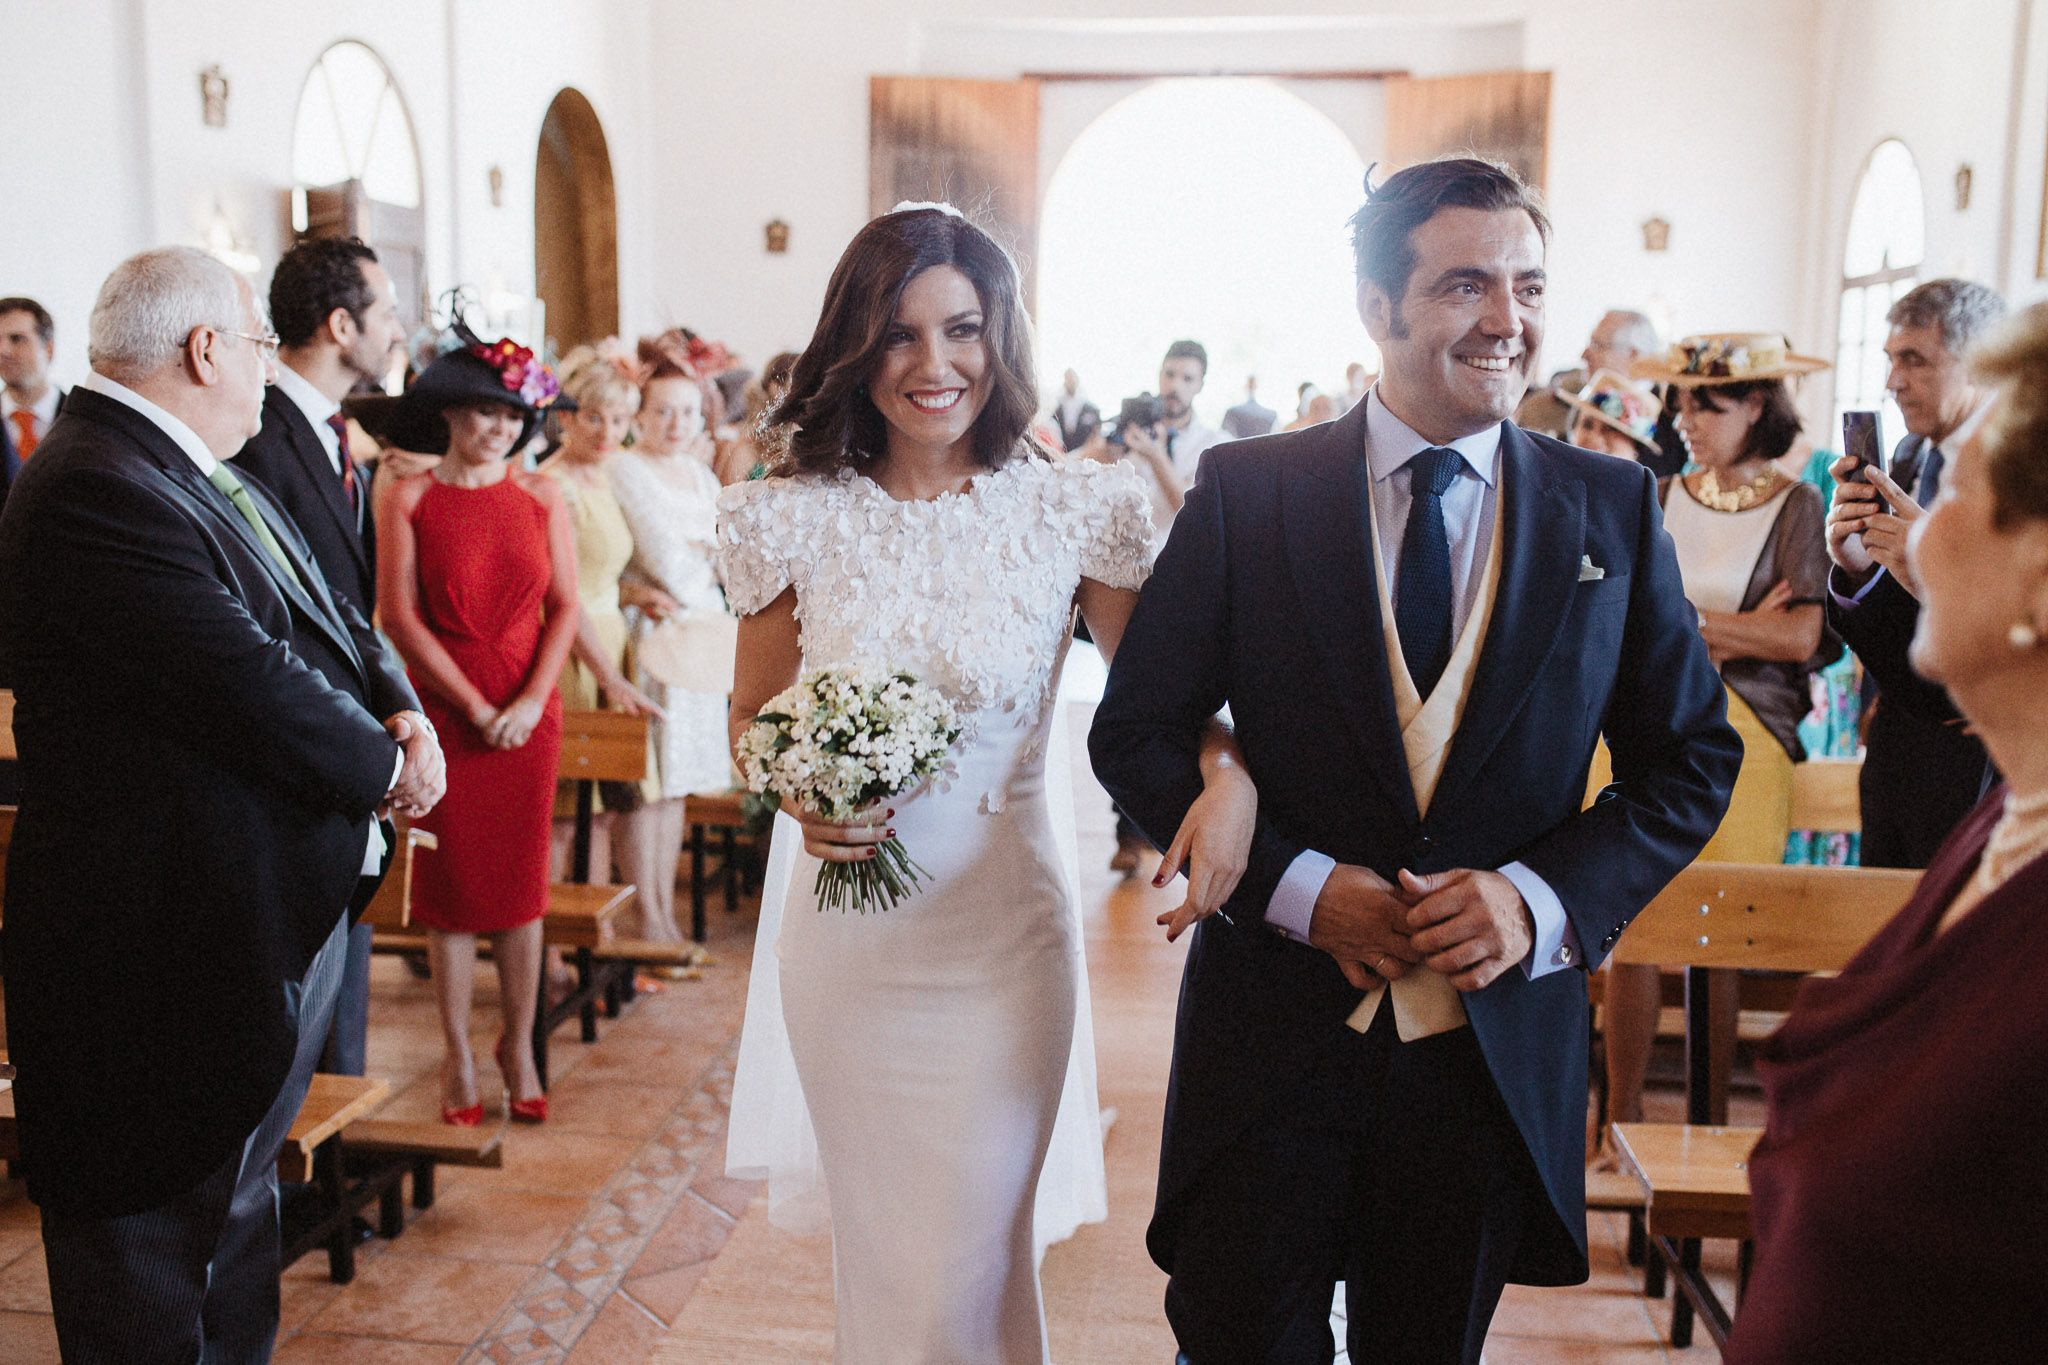 Boda Jorge Campos y Rebeca Vallejo - WEddings With Love y Forraje Films